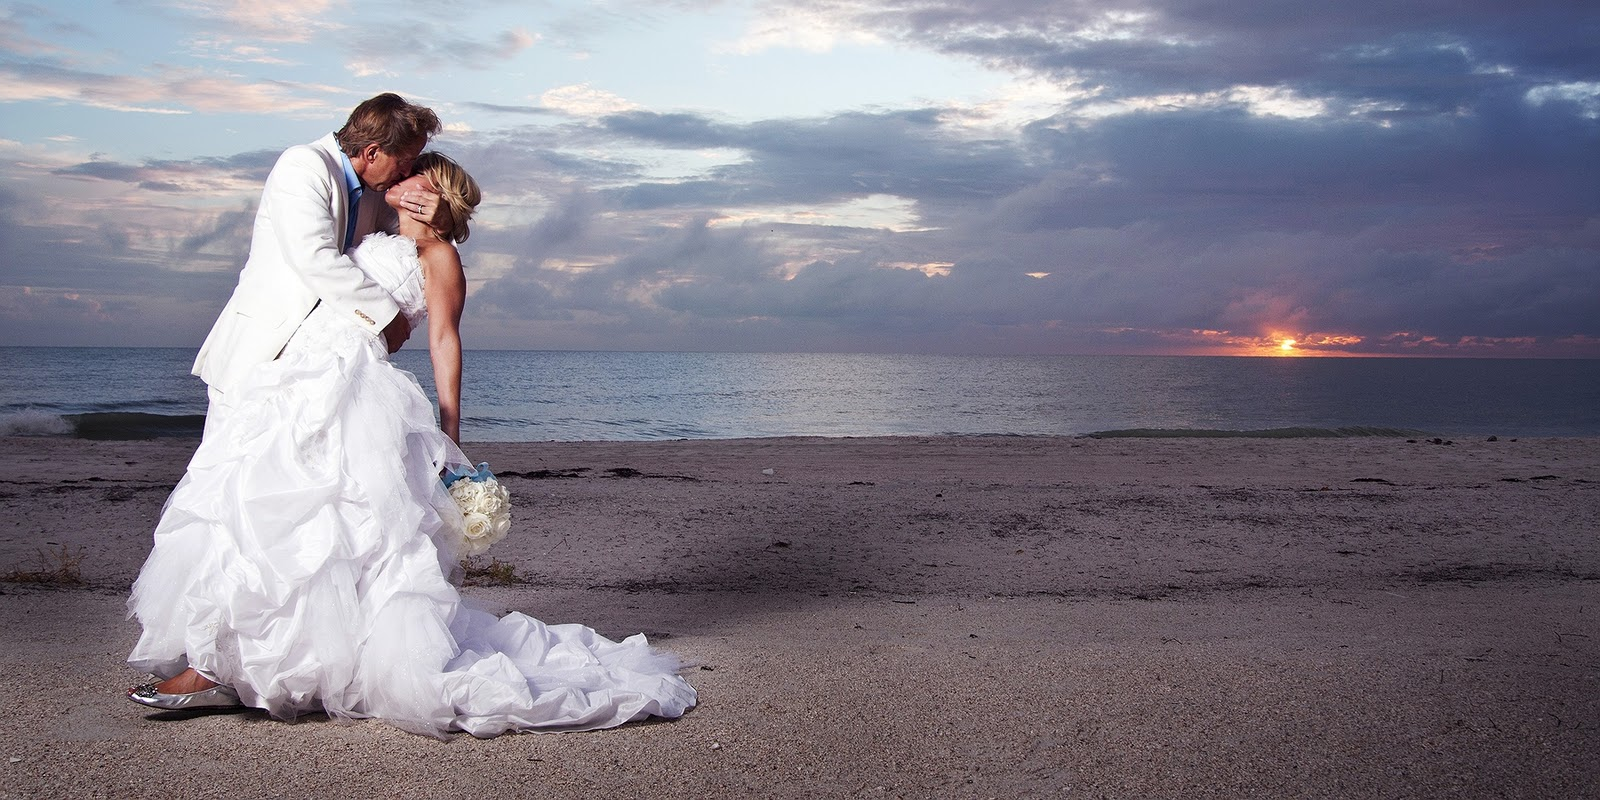 Clearwater Beach Wedding Planner Perfect Florida Can Handle All The Details For Your Gazebos Chairs Officiante